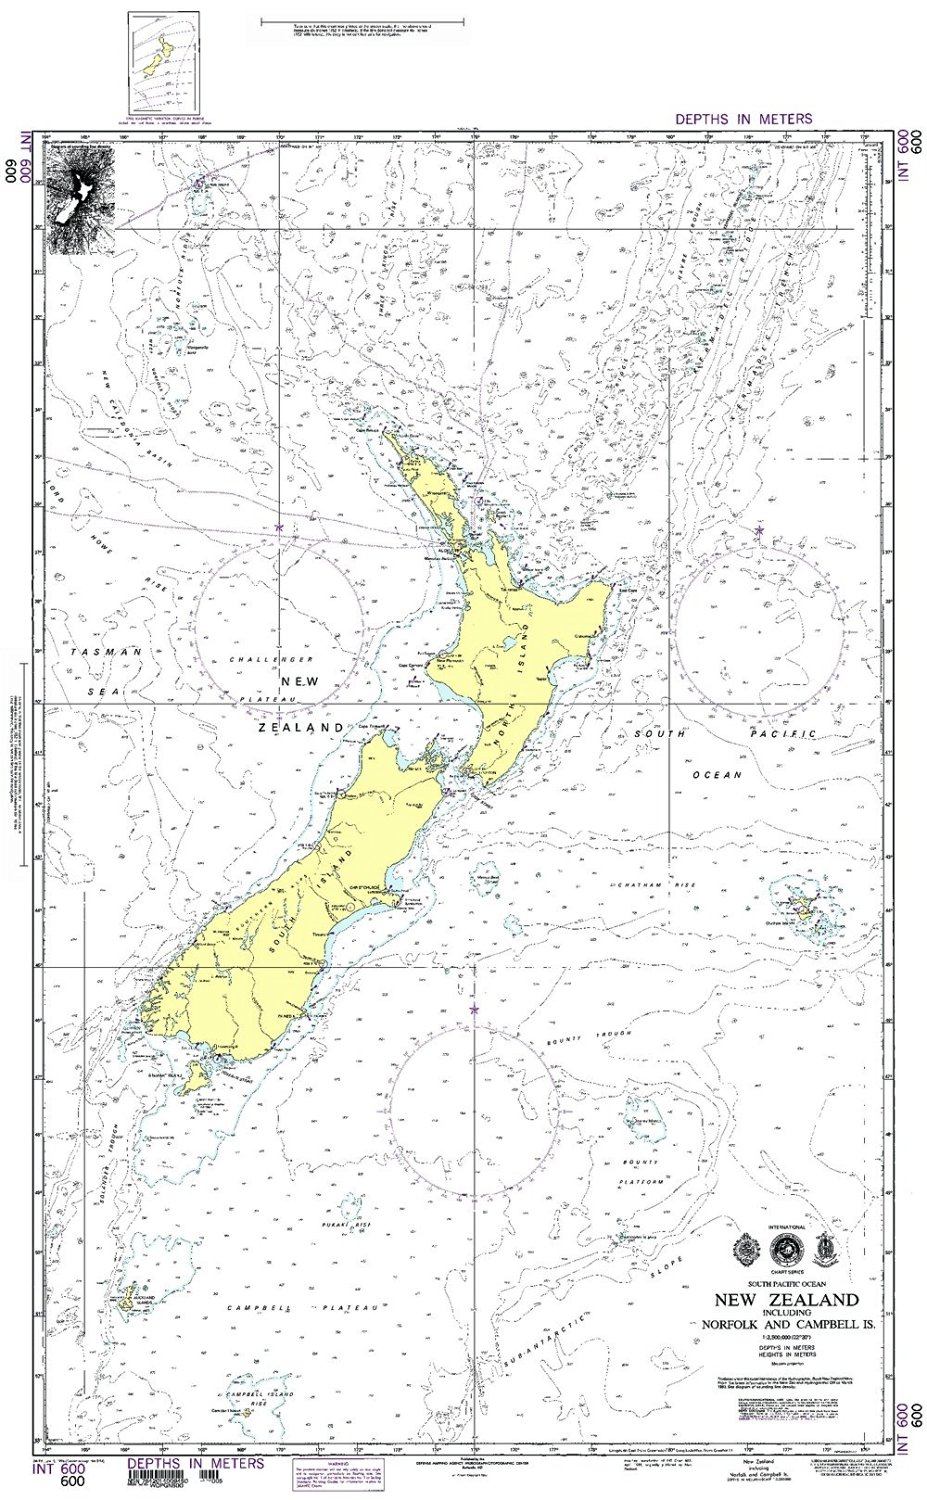 NGA Chart 600WP: South Pacific Ocean New Zealand Including Norfolk And Campbell Isl; 28 X 45; WATERPROOF